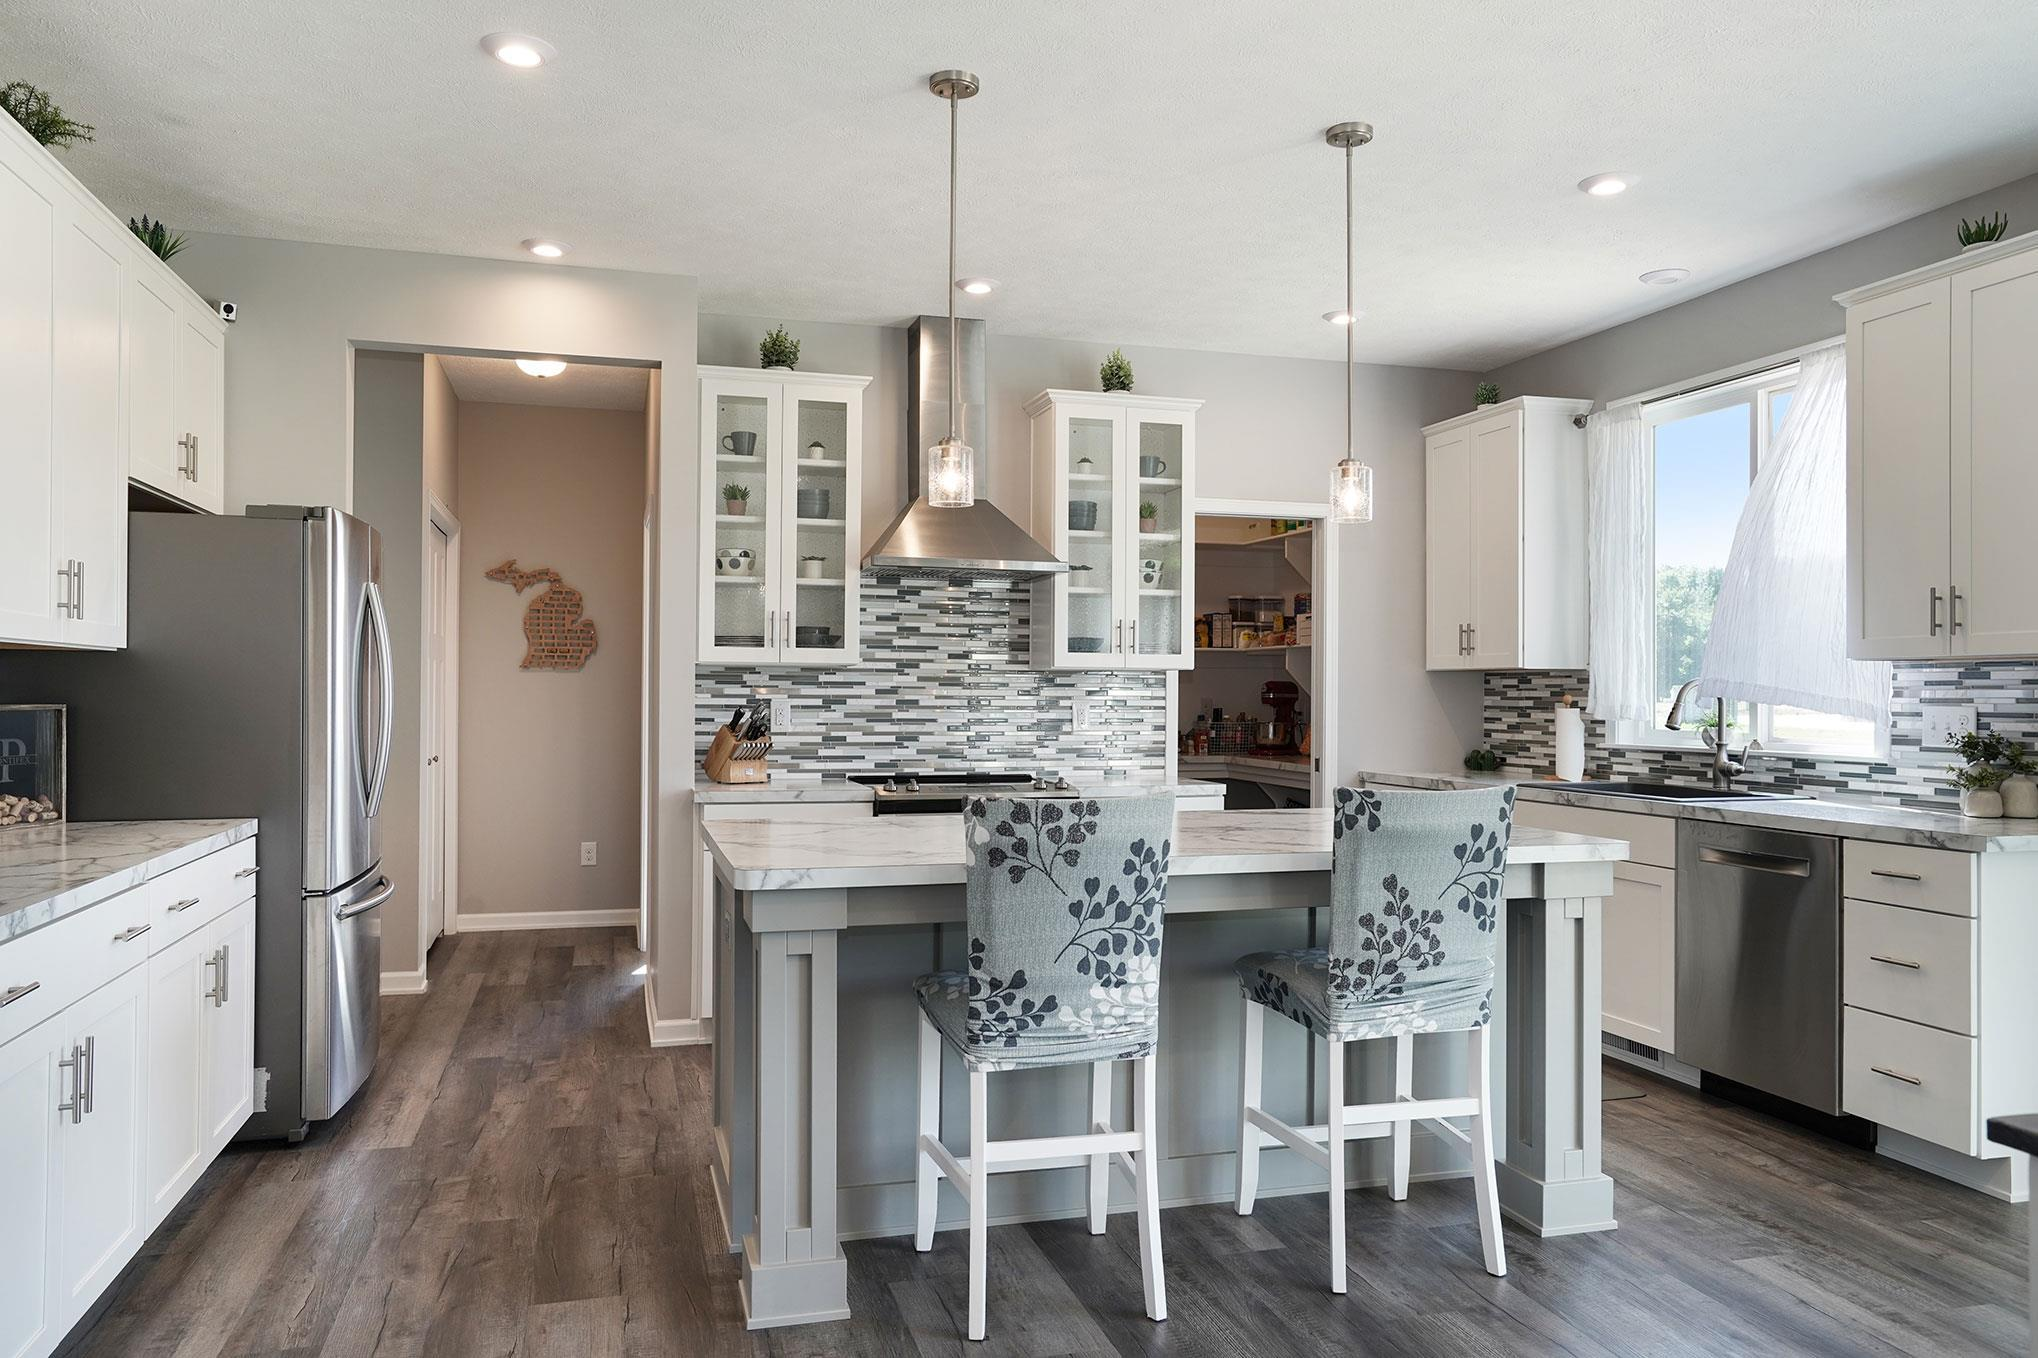 Kitchen featured in The Crestview By Eastbrook Homes Inc. in Grand Rapids, MI